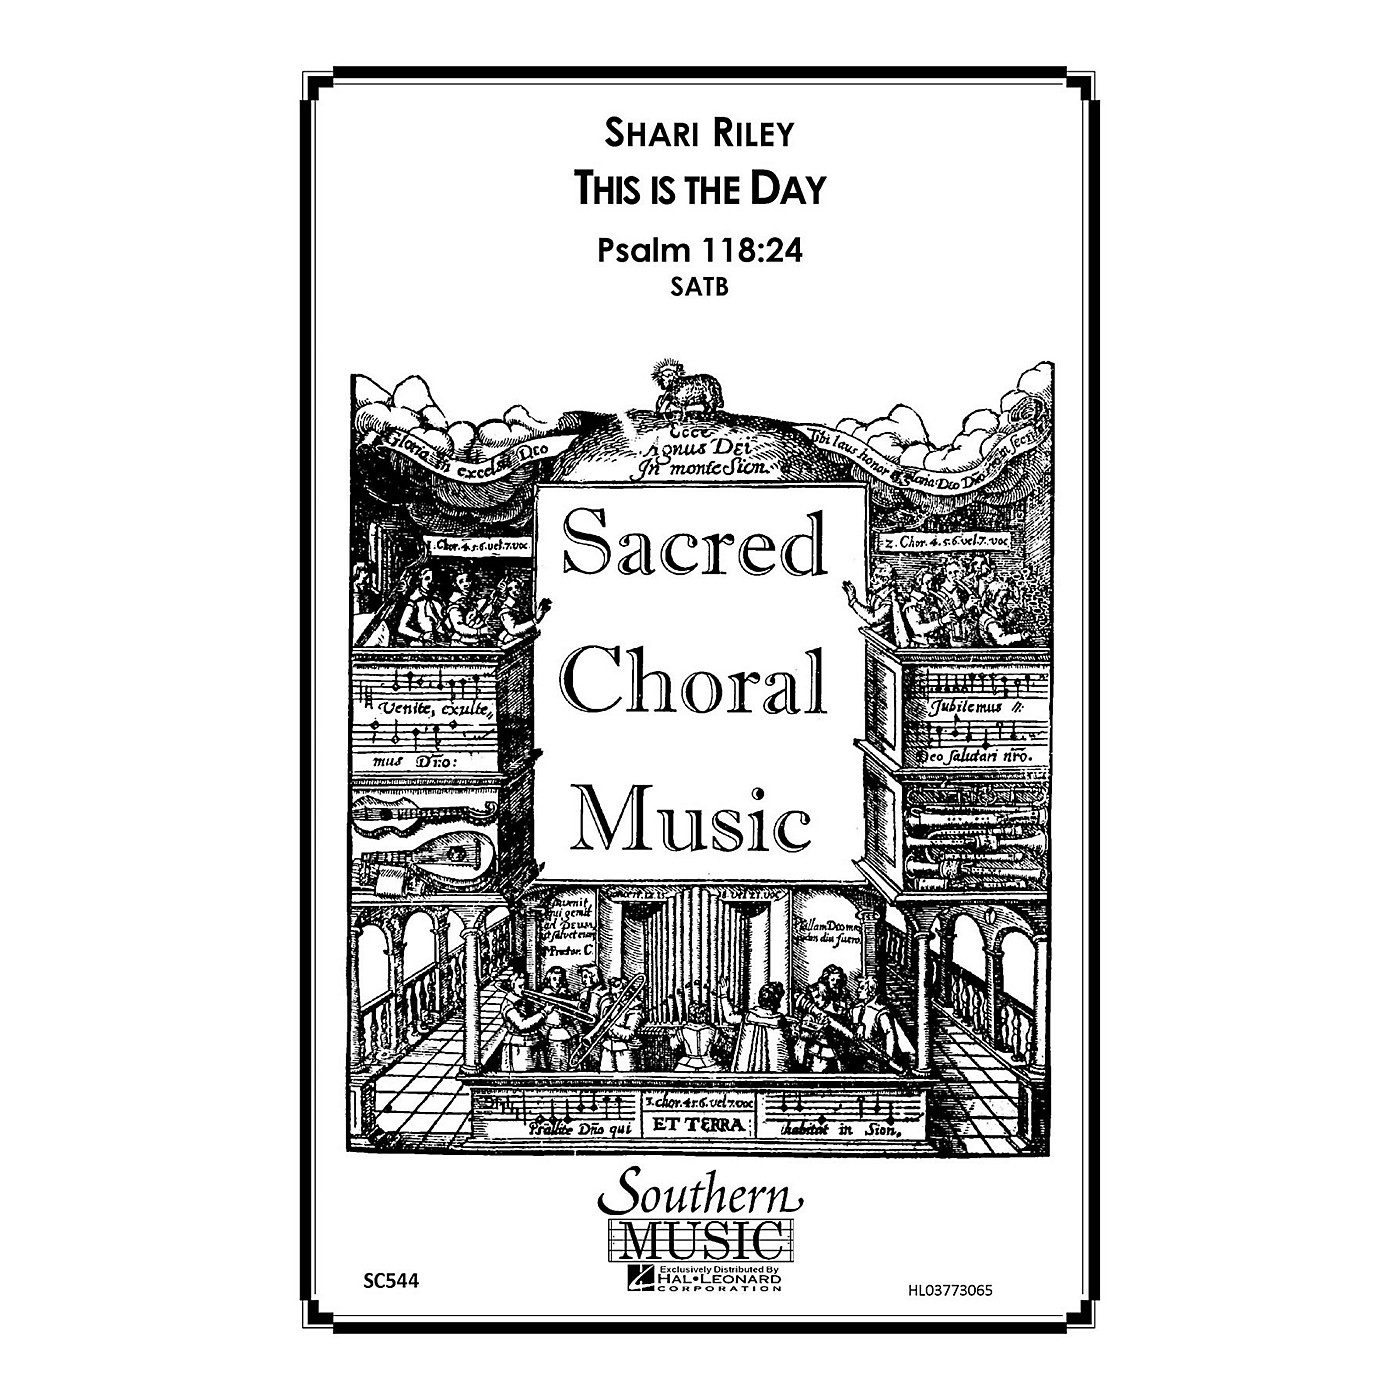 Hal Leonard This Is the Day (Choral Music/Octavo Sacred Satb) SATB Composed by Riley, Shari thumbnail